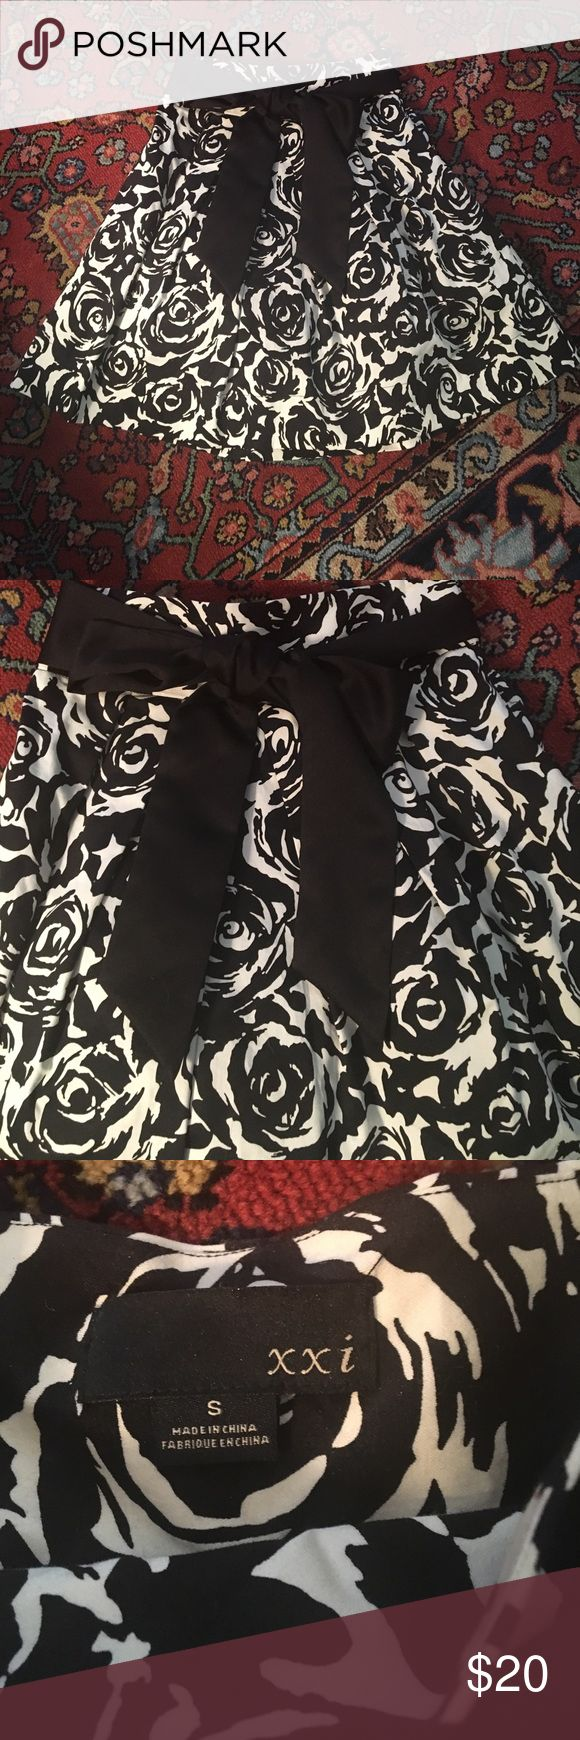 Black and white skirt size S Black and white skirt Size S by XXI. Worn a few times and in excellent condition. Includes black bow. Zips up the side. Skirt measures 20 1/2 inches from waist to hem. Skirt has cute pleats that make it poof out and it is lined. XXI Skirts Mini